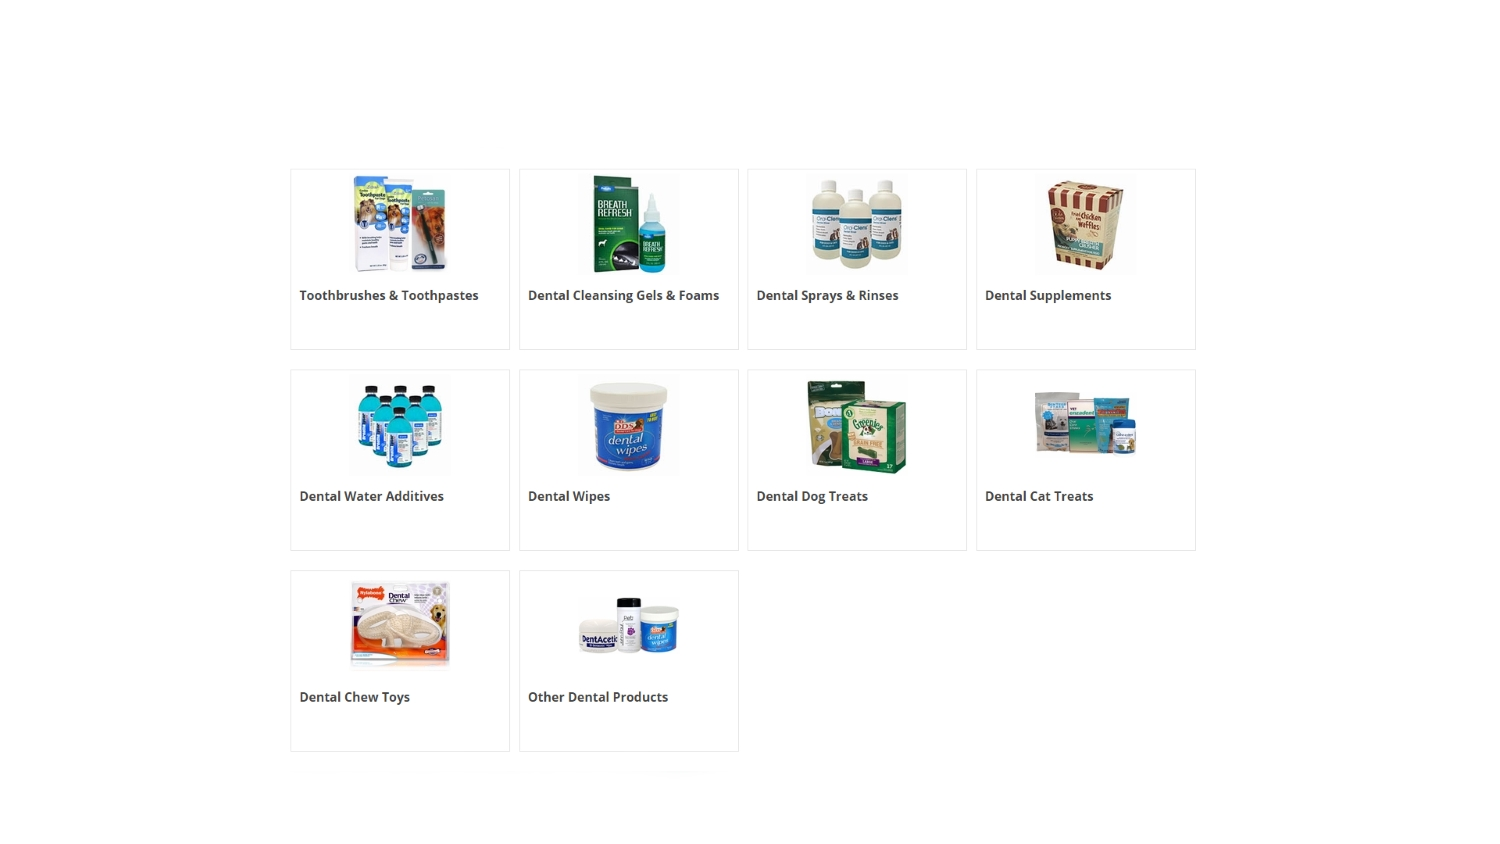 Dental Products for Pets Get 20% off at HealthyPets.com